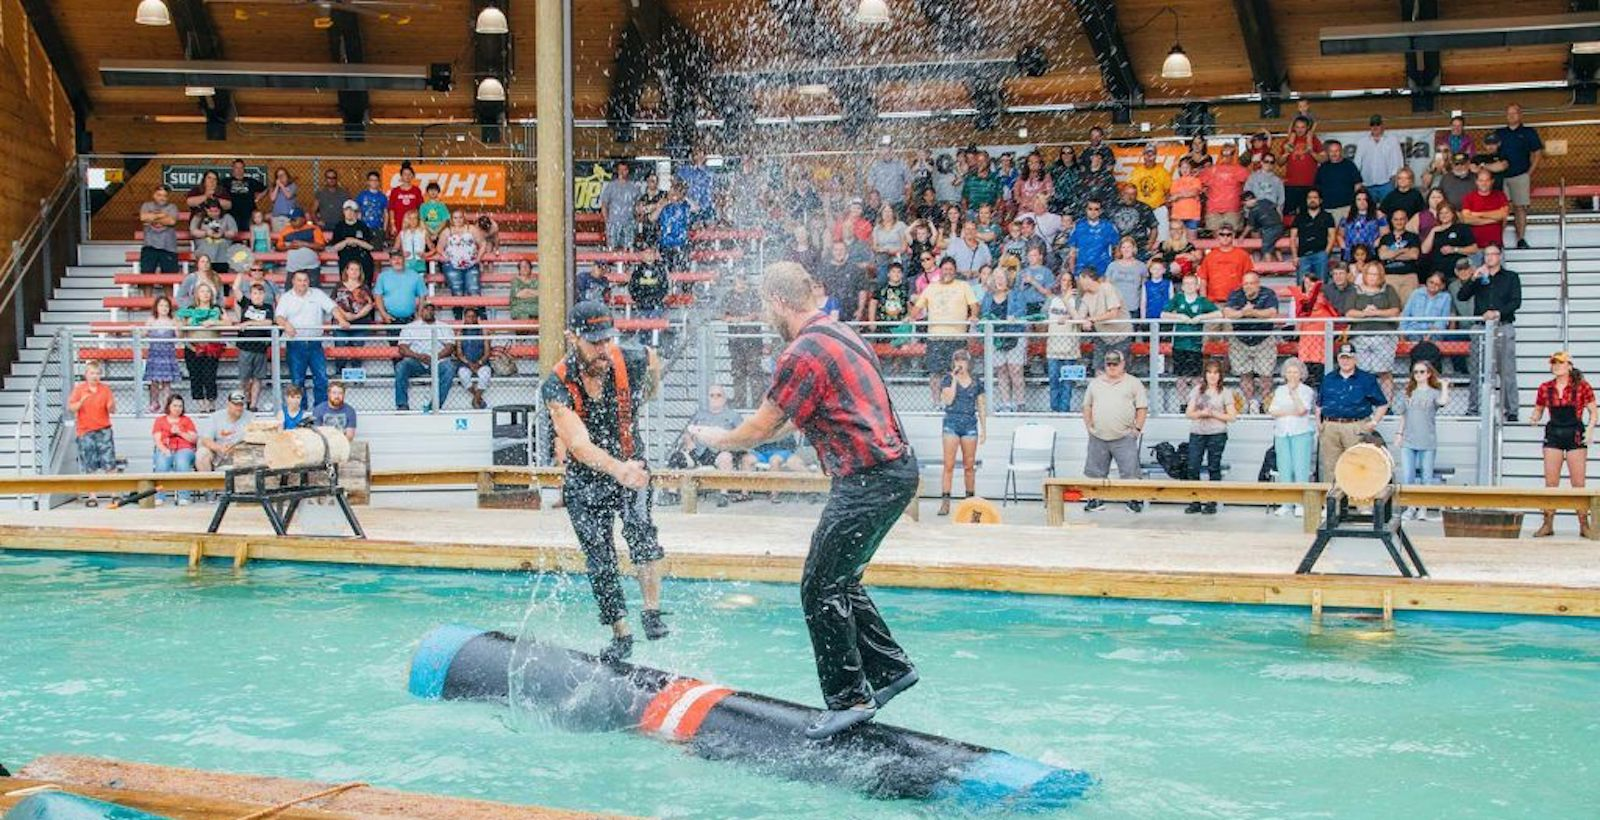 Top 4 Reasons You Will Love Our Adventure Packages with Lumberjack Feud